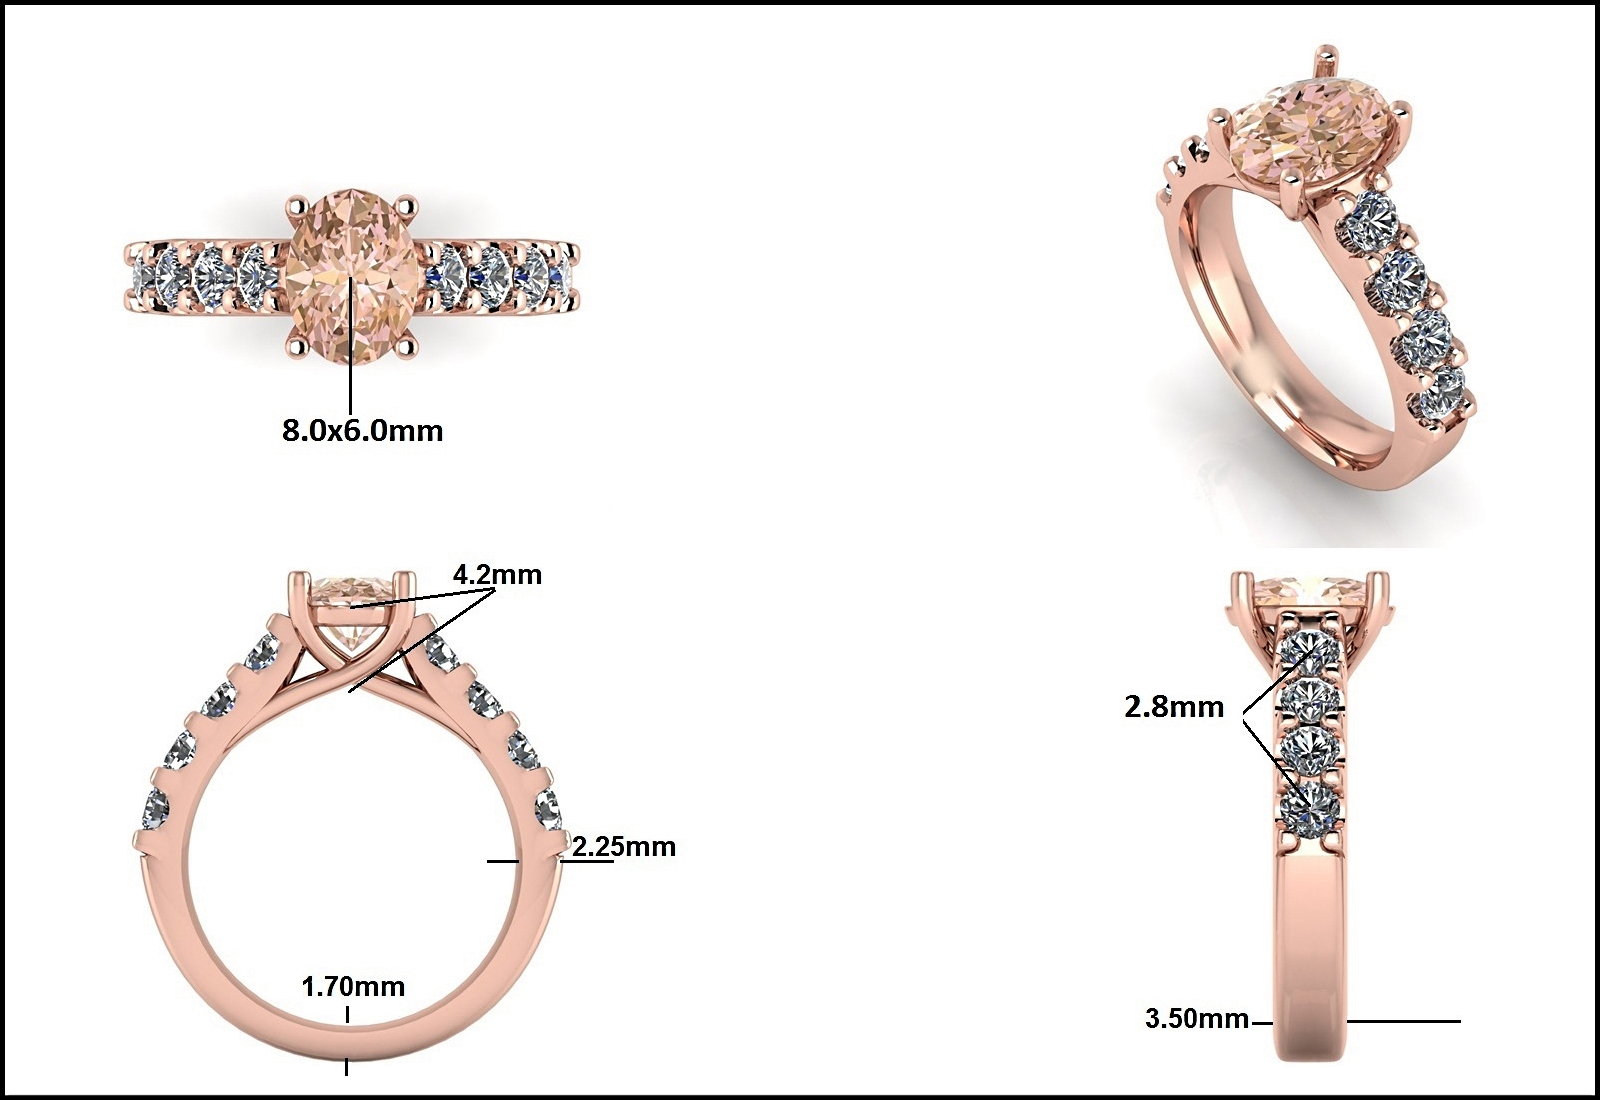 Custom Jewelry Design - Mitchum Jewelers - Image 34